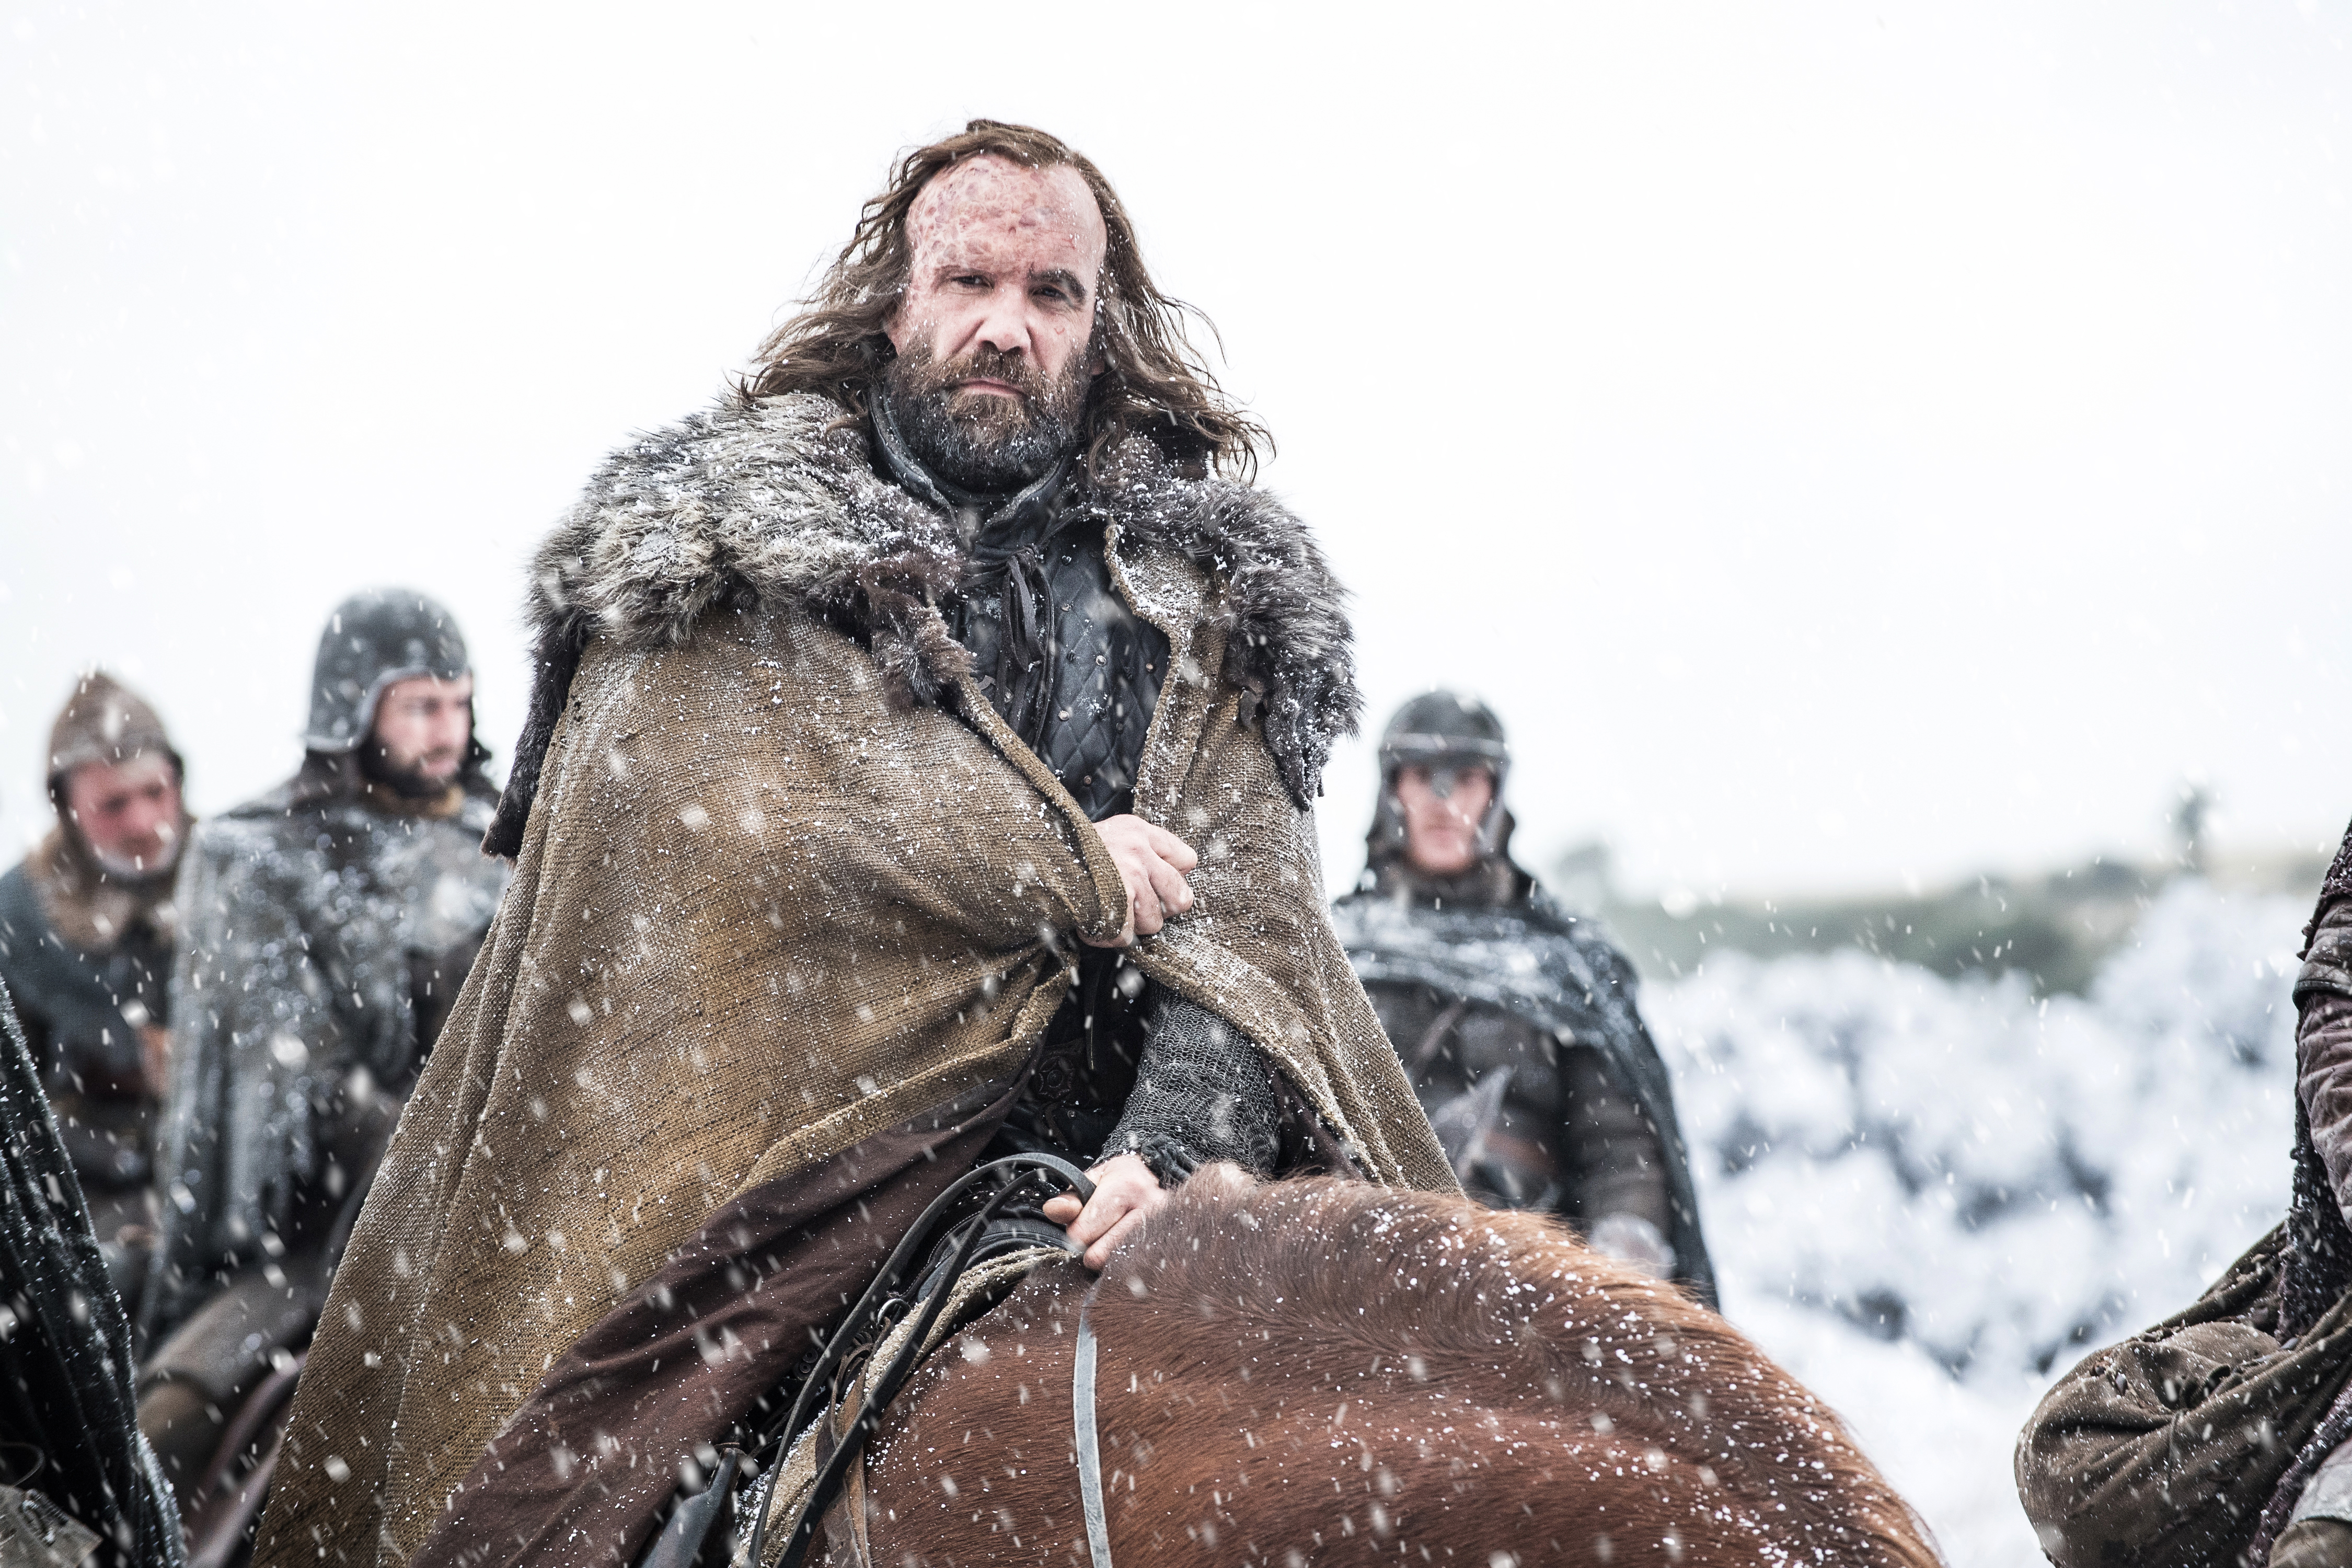 Rory McCann as Sandor Clegane also known as The Hound